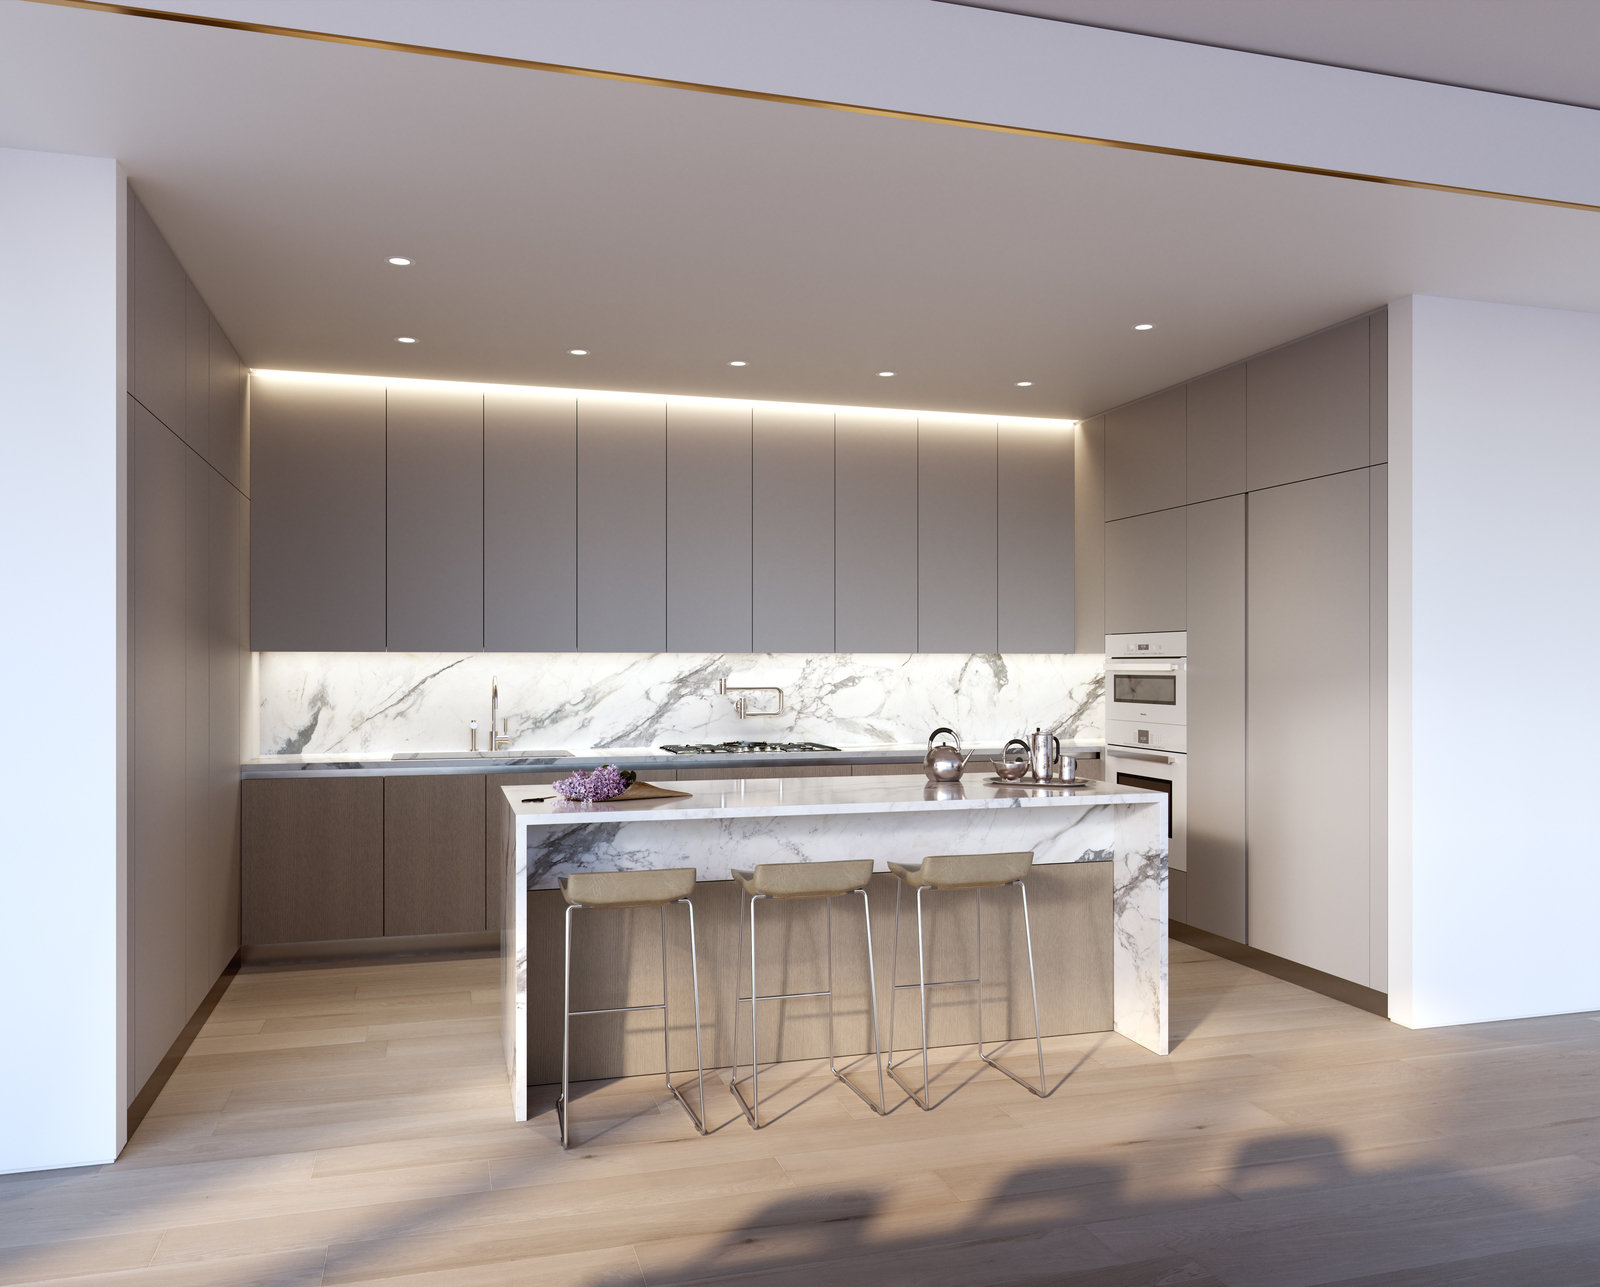 Rendering of kitchen area at 80 east 10th street with MEP-FP engineering services provided by 2L Engineering